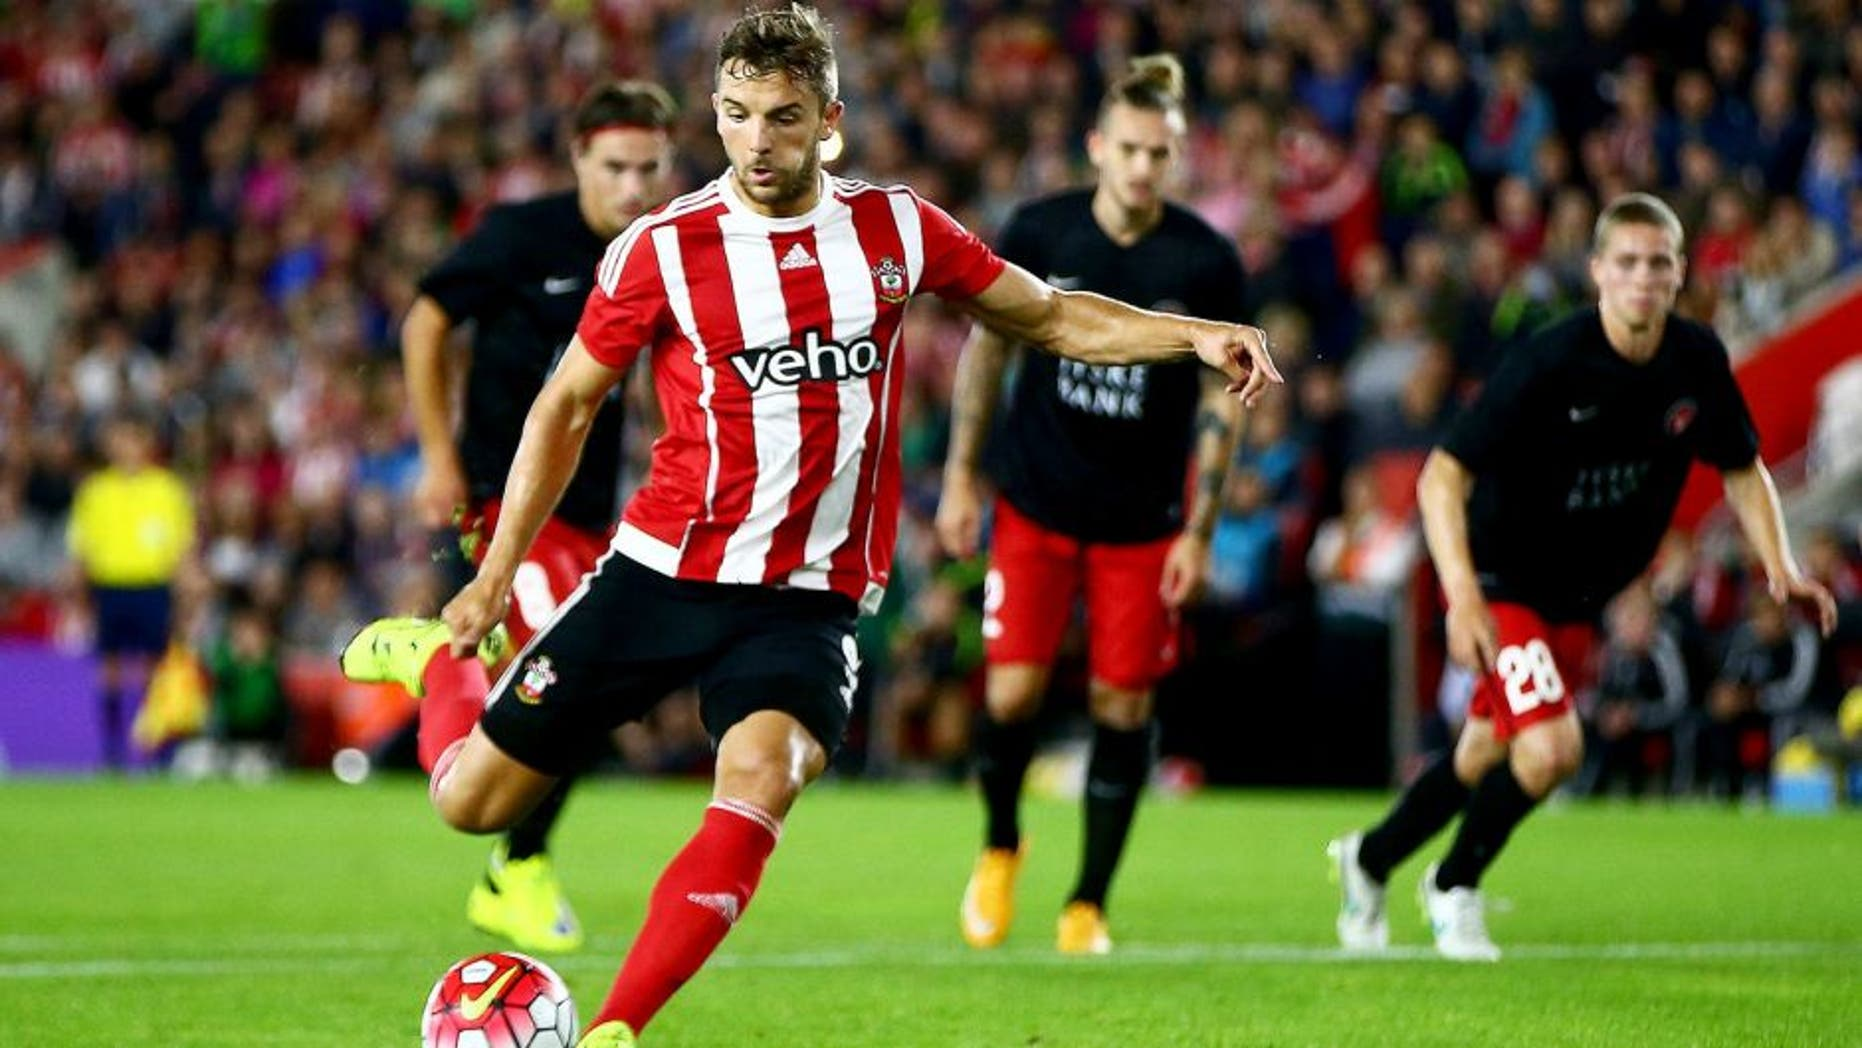 SOUTHAMPTON, ENGLAND - AUGUST 20: Jay Rodriguez of Southampton scores from the penalty spot during the UEFA Europa League Play Off Round 1st Leg match between Southampton and Midtjylland at St Mary's Stadium on August 20, 2015 in Southampton, England. (Photo by Jordan Mansfield/Getty Images)